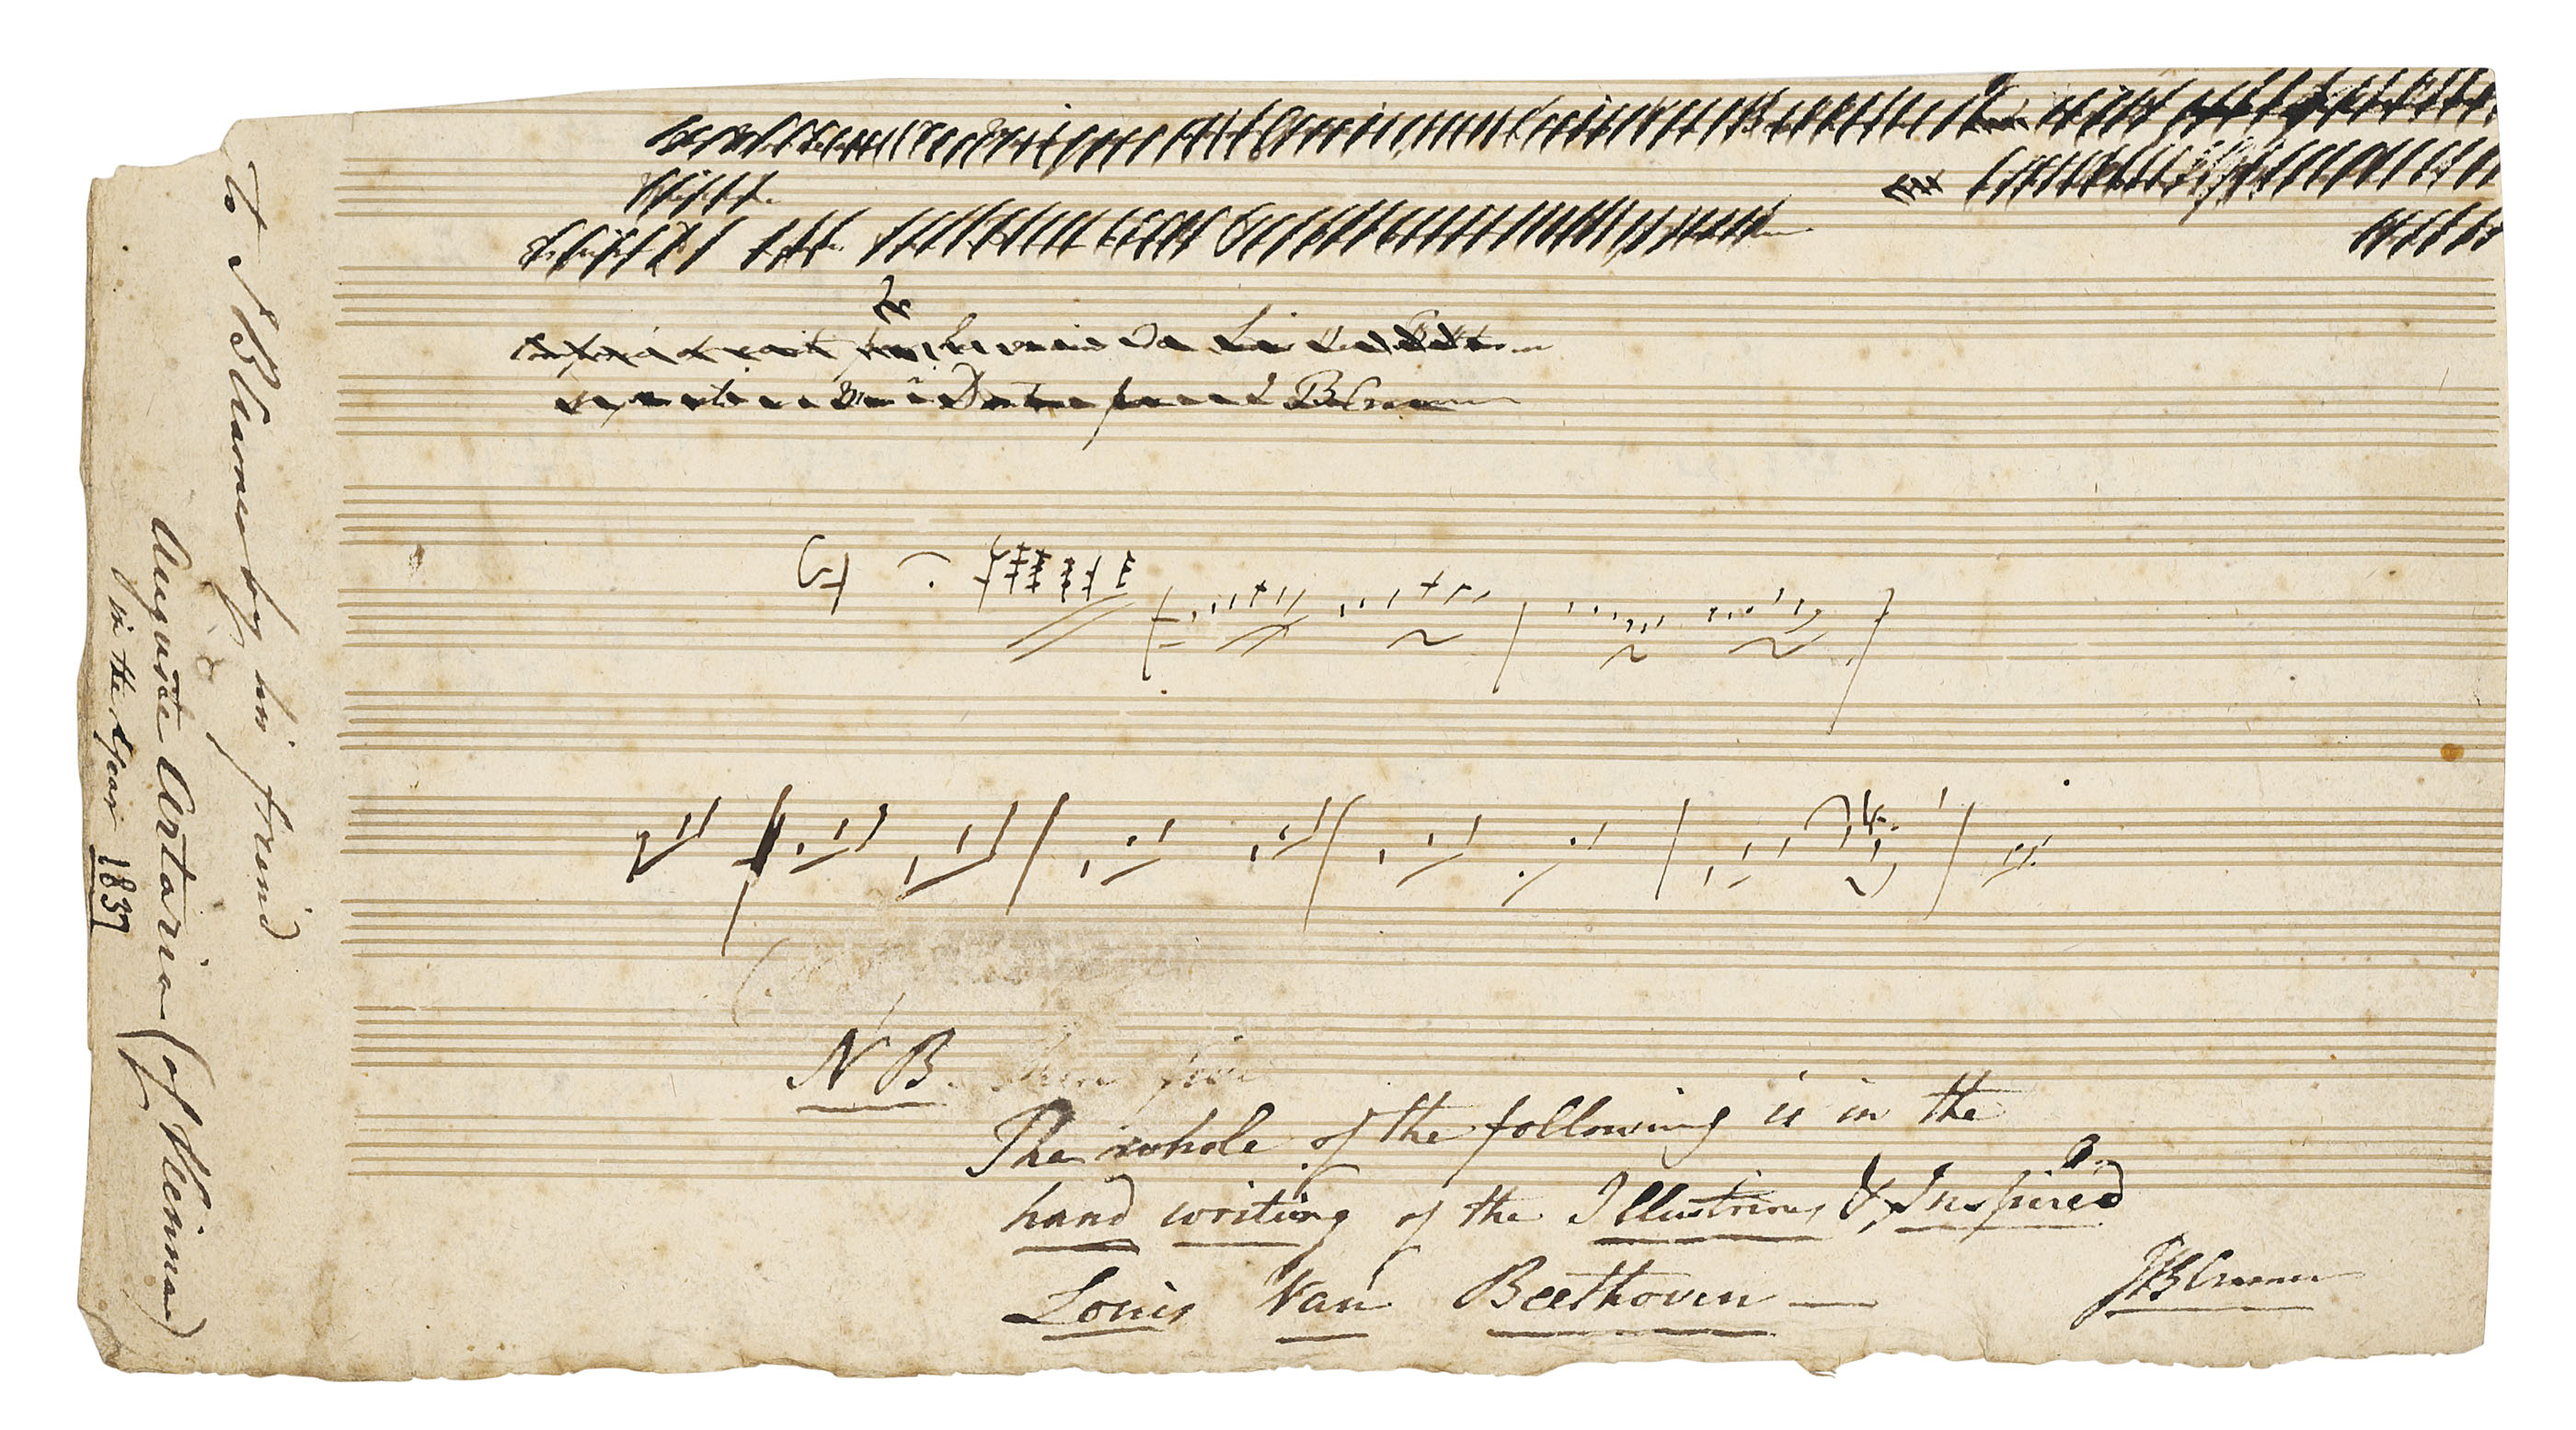 BEETHOVEN, Ludwig van (1770-1827). Autograph music manuscript, [Vienna, c.1806], a sketchleaf for the slow movement of the String Quartet in C, op.59, no.3, the third 'Razumovsky' quartet, a densely-used leaf comprising a number of sketches and drafts of varying lengths, on one, two or three staves, with frequent cancellations and emendations, the sketches principally on the verso (two drafts only on the recto), one stave extended into the margin, two pages, 150 x 280mm, ruled with 11 staves, cut down from a larger leaf, probably of 16 staves (slight spotting, stitch holes at margin).